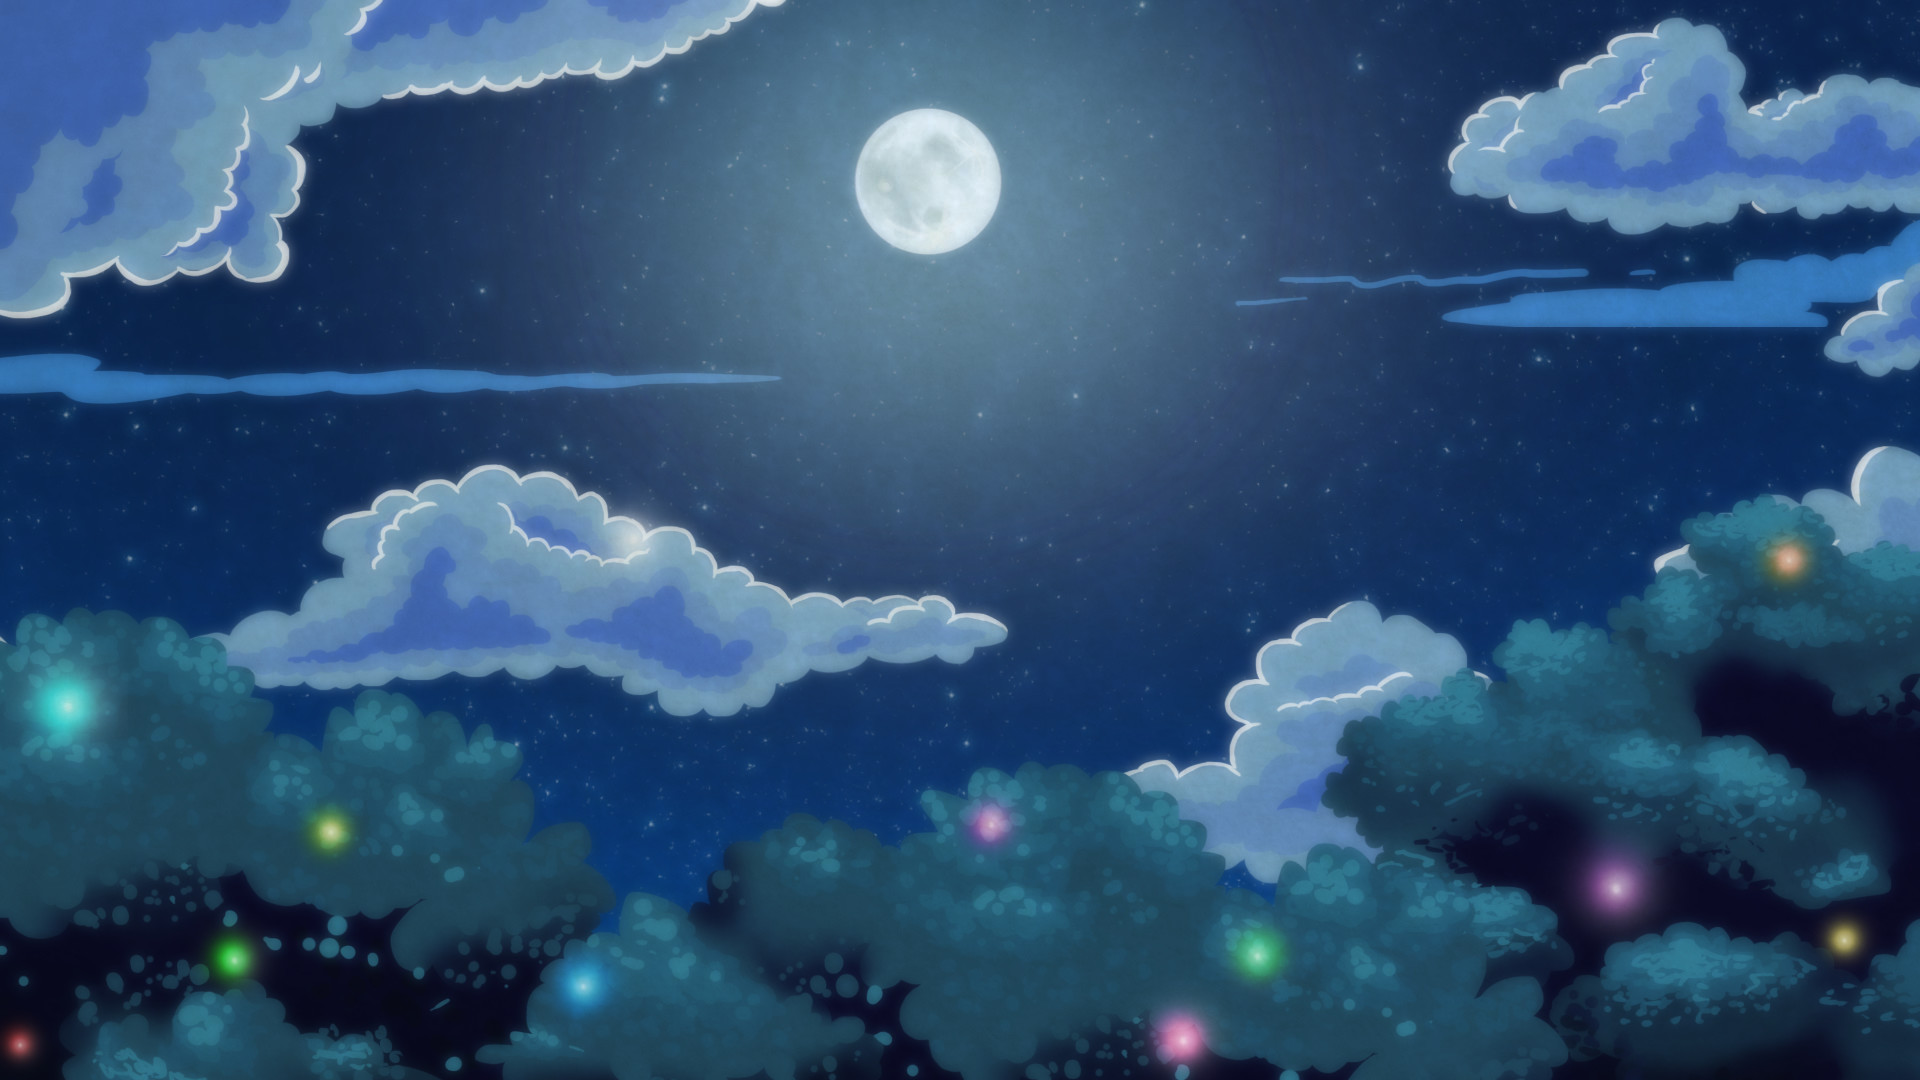 Night Forest by alliaxandromeda Night Forest by alliaxandromeda